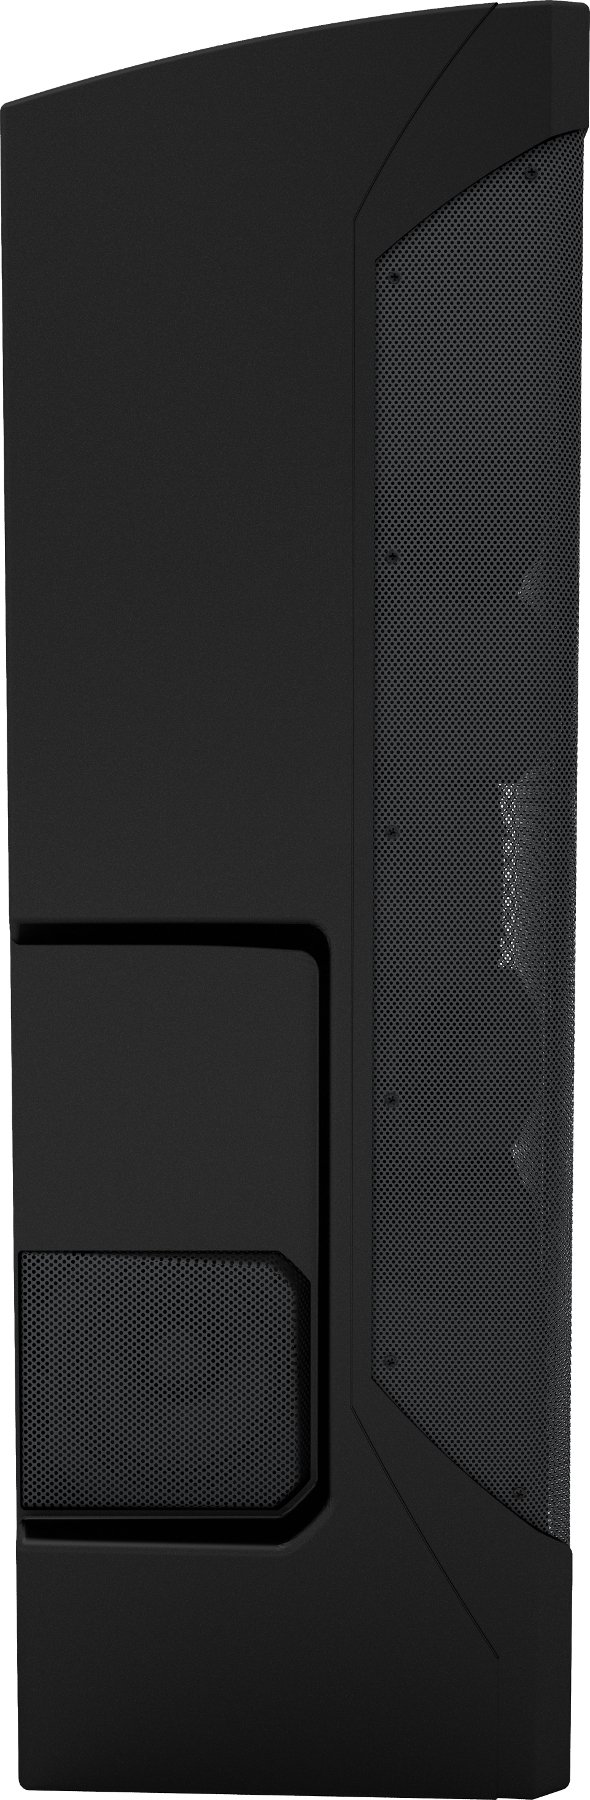 Ultra Wide Coverage Portable PA System